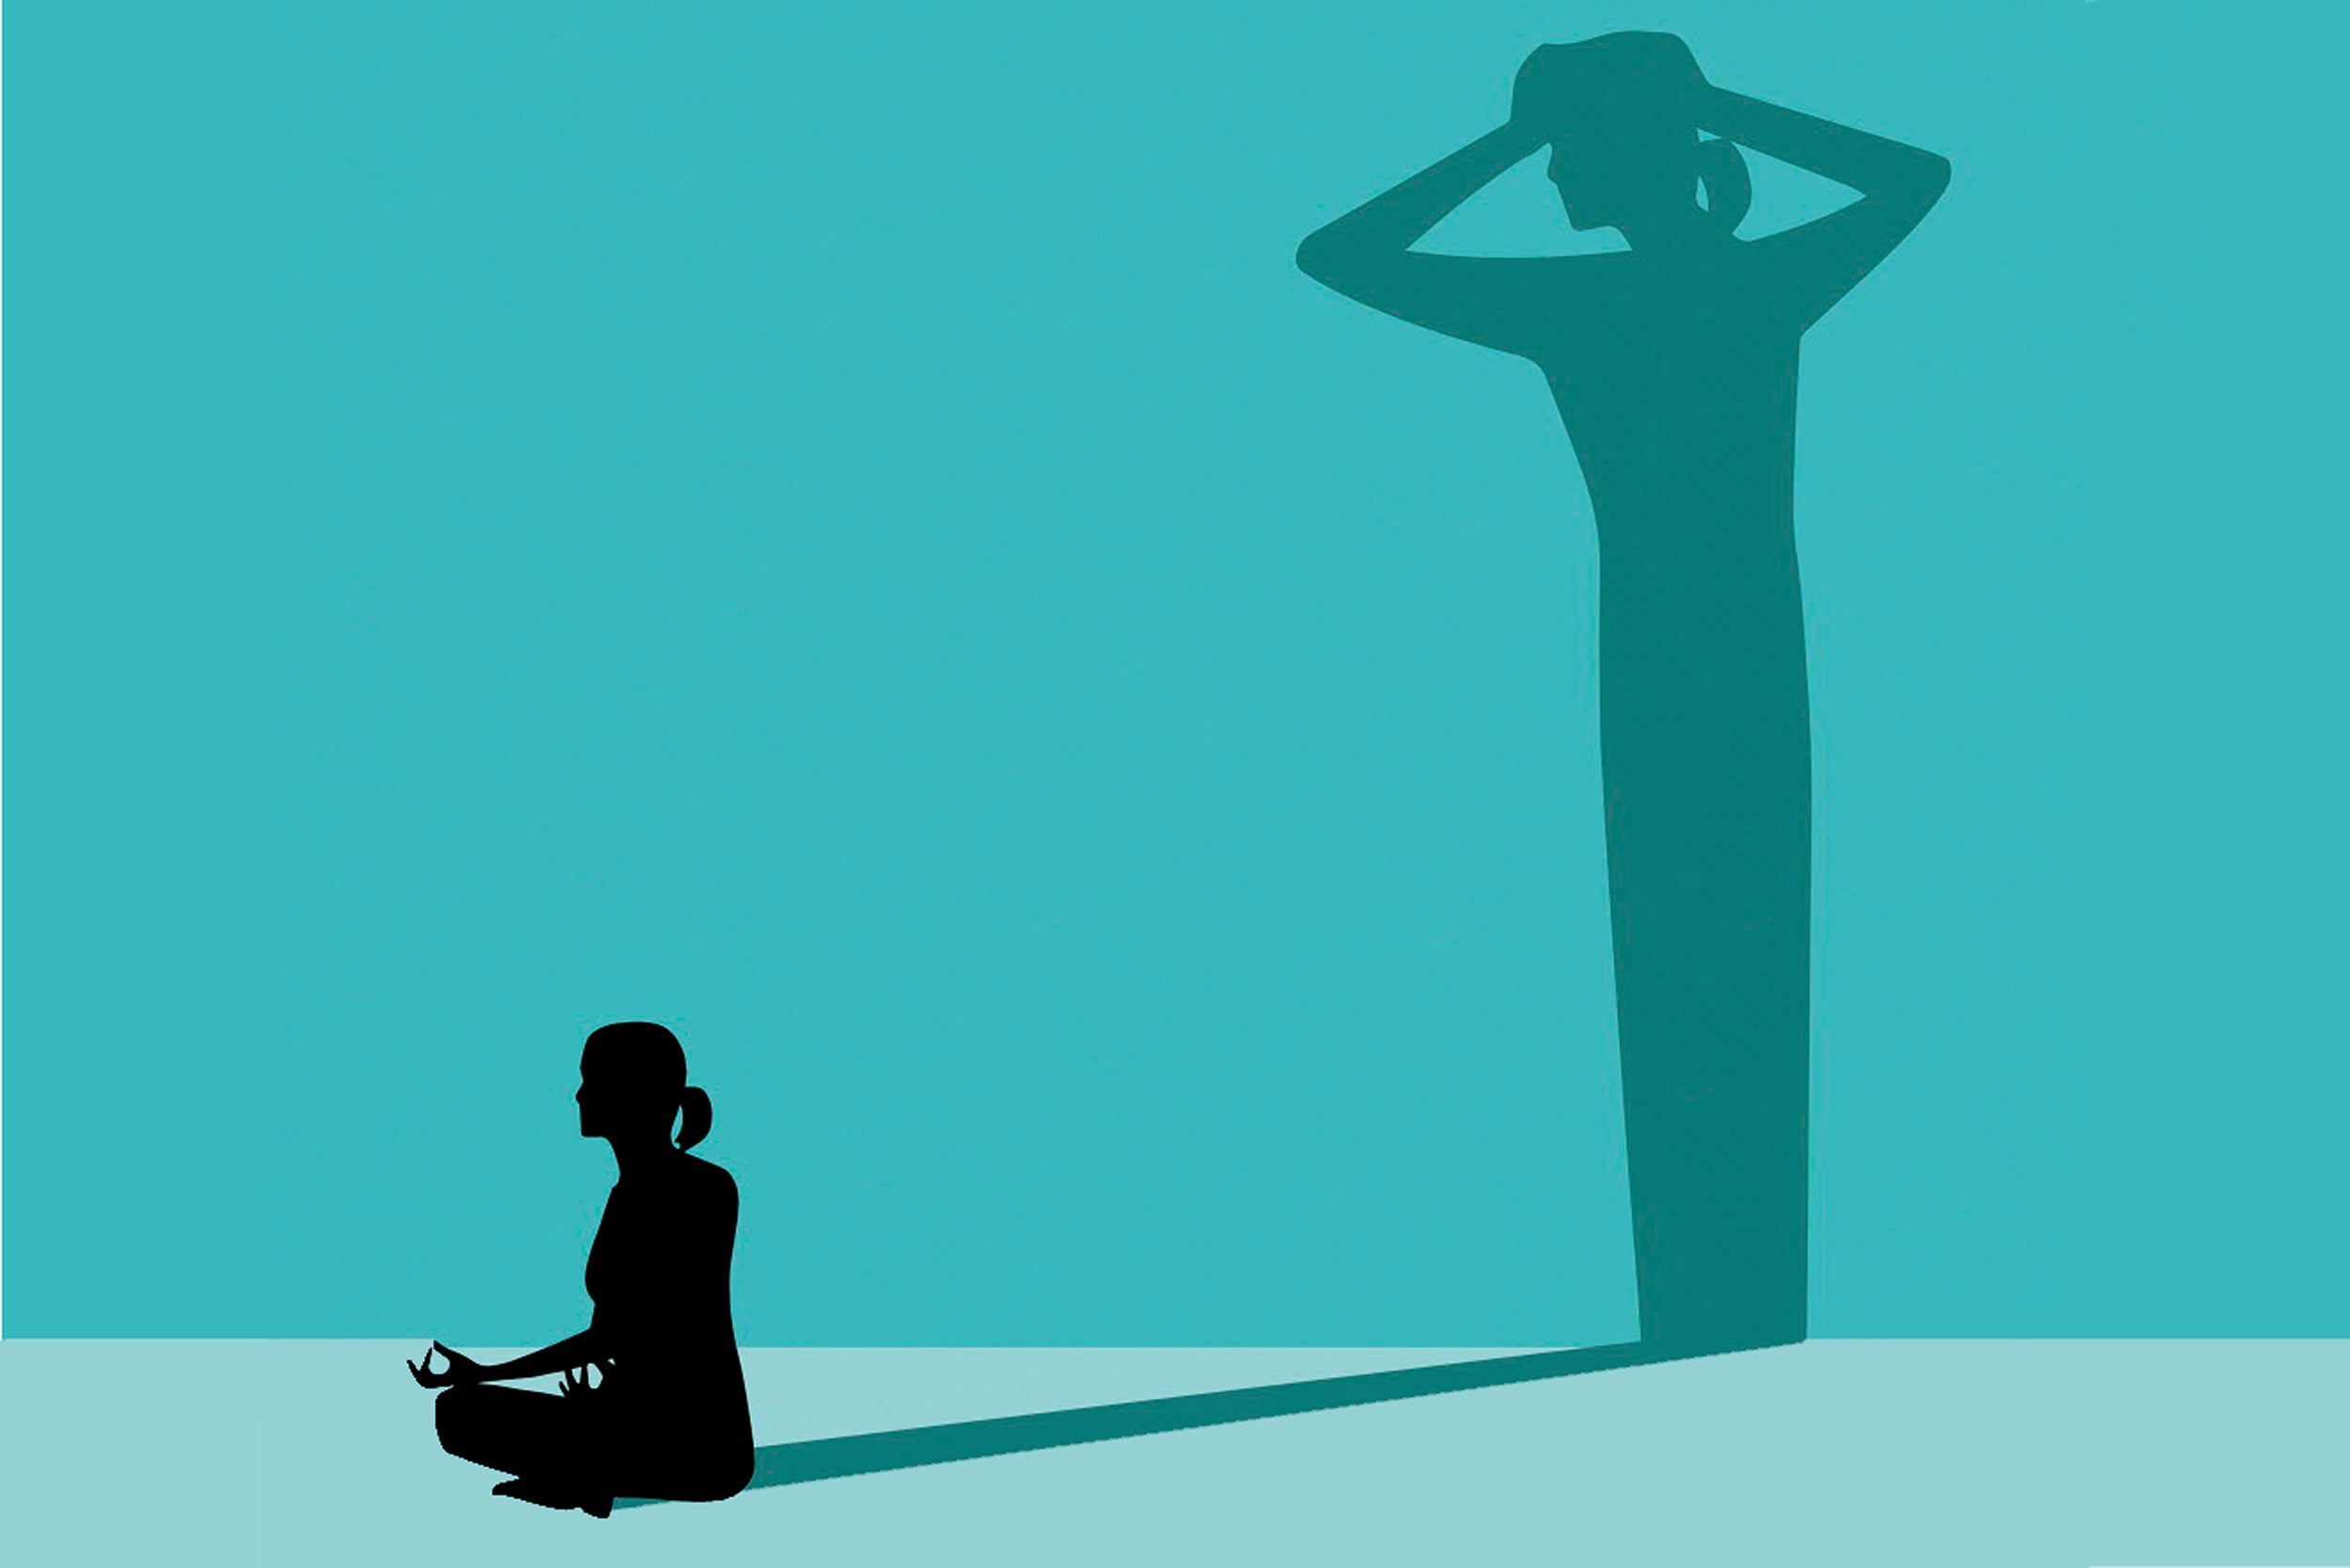 Illustration of meditator with fear shadow